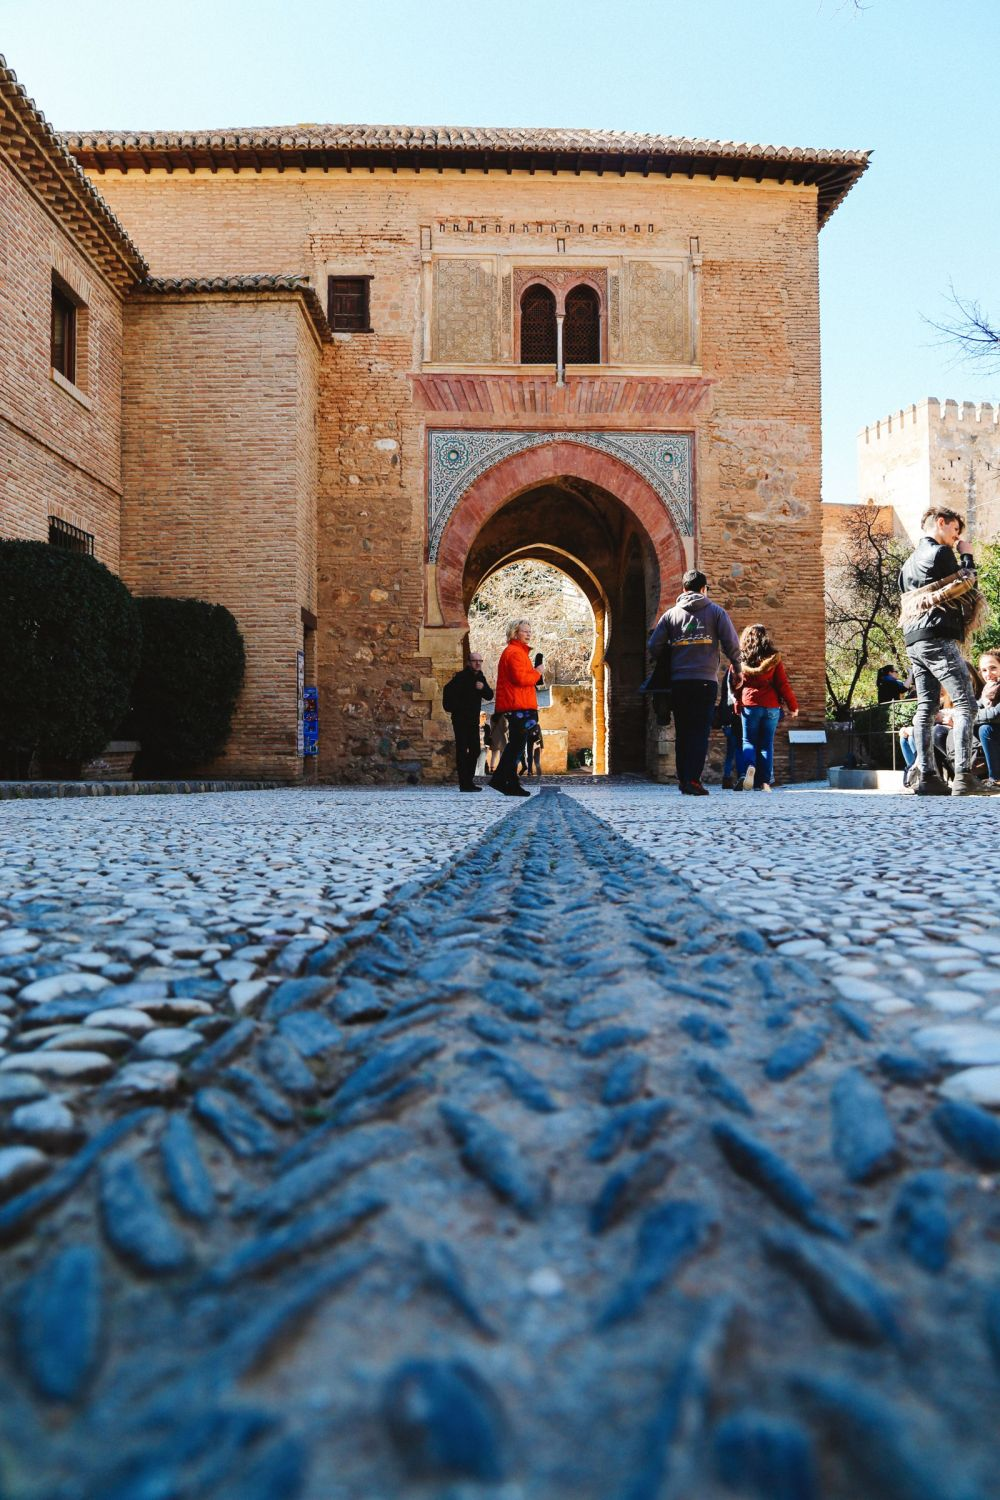 The Amazingly Intricate Alhambra Palace of Spain (35)